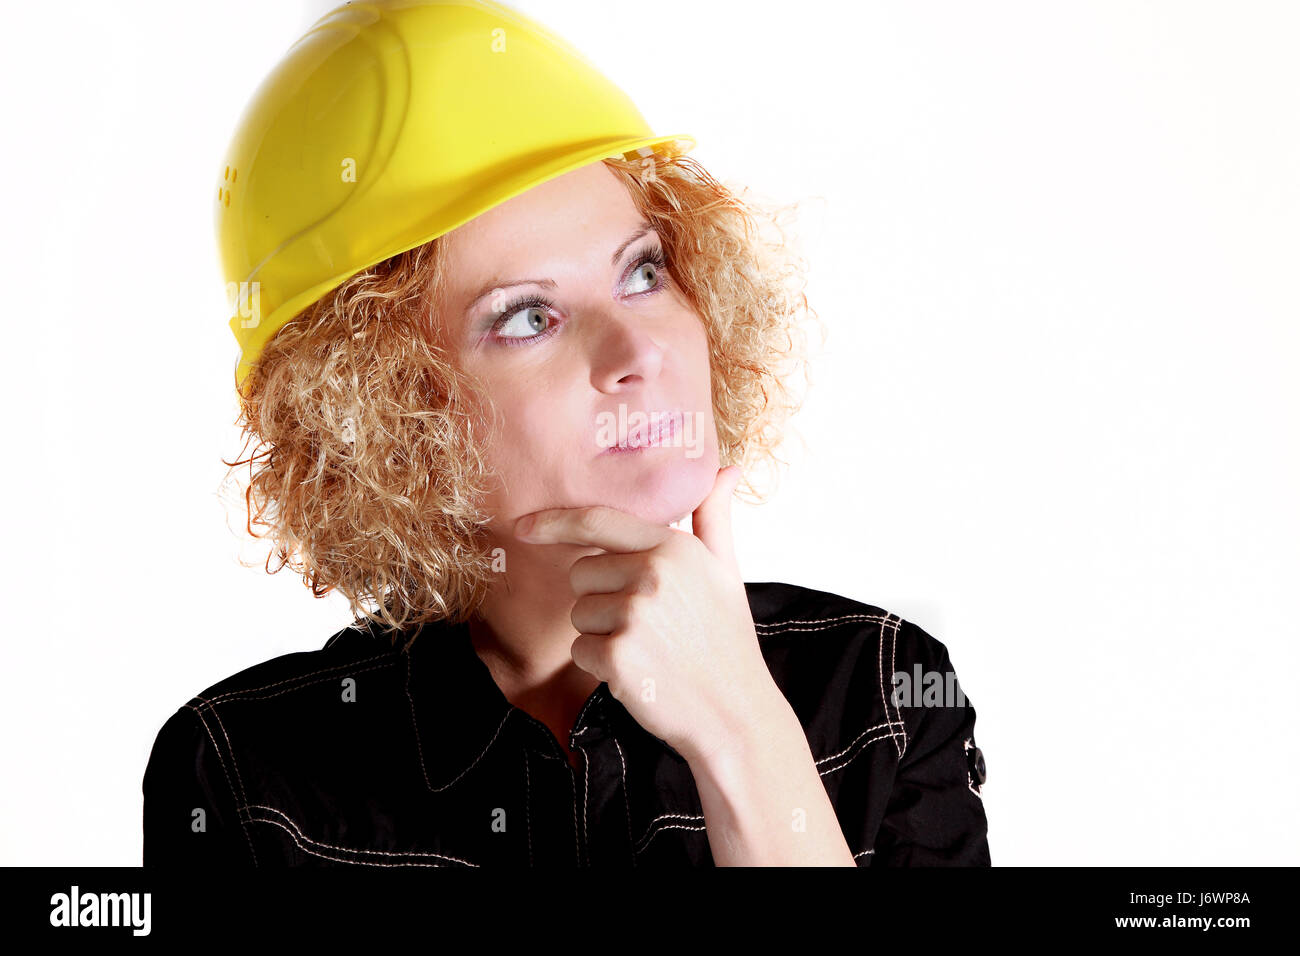 carefully considered - Stock Image